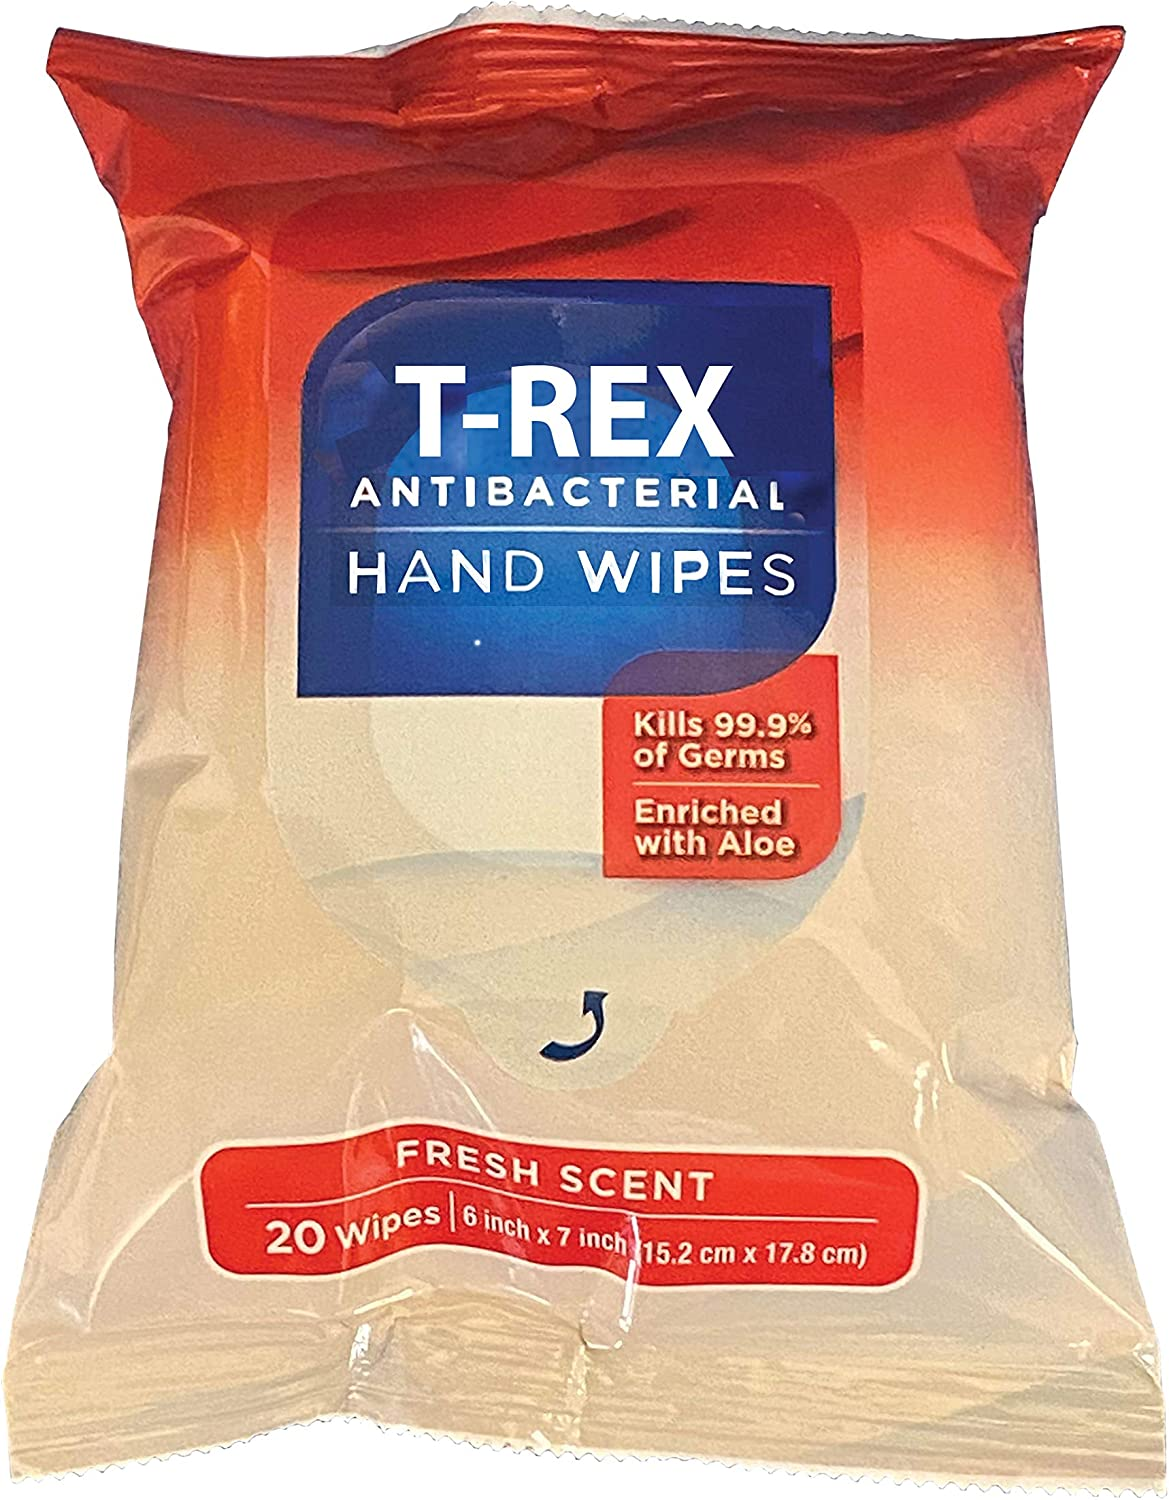 T-Rex Antibacterial Hand Wipes, Fresh Scent, Pack with 20 Sanitizing Wipes